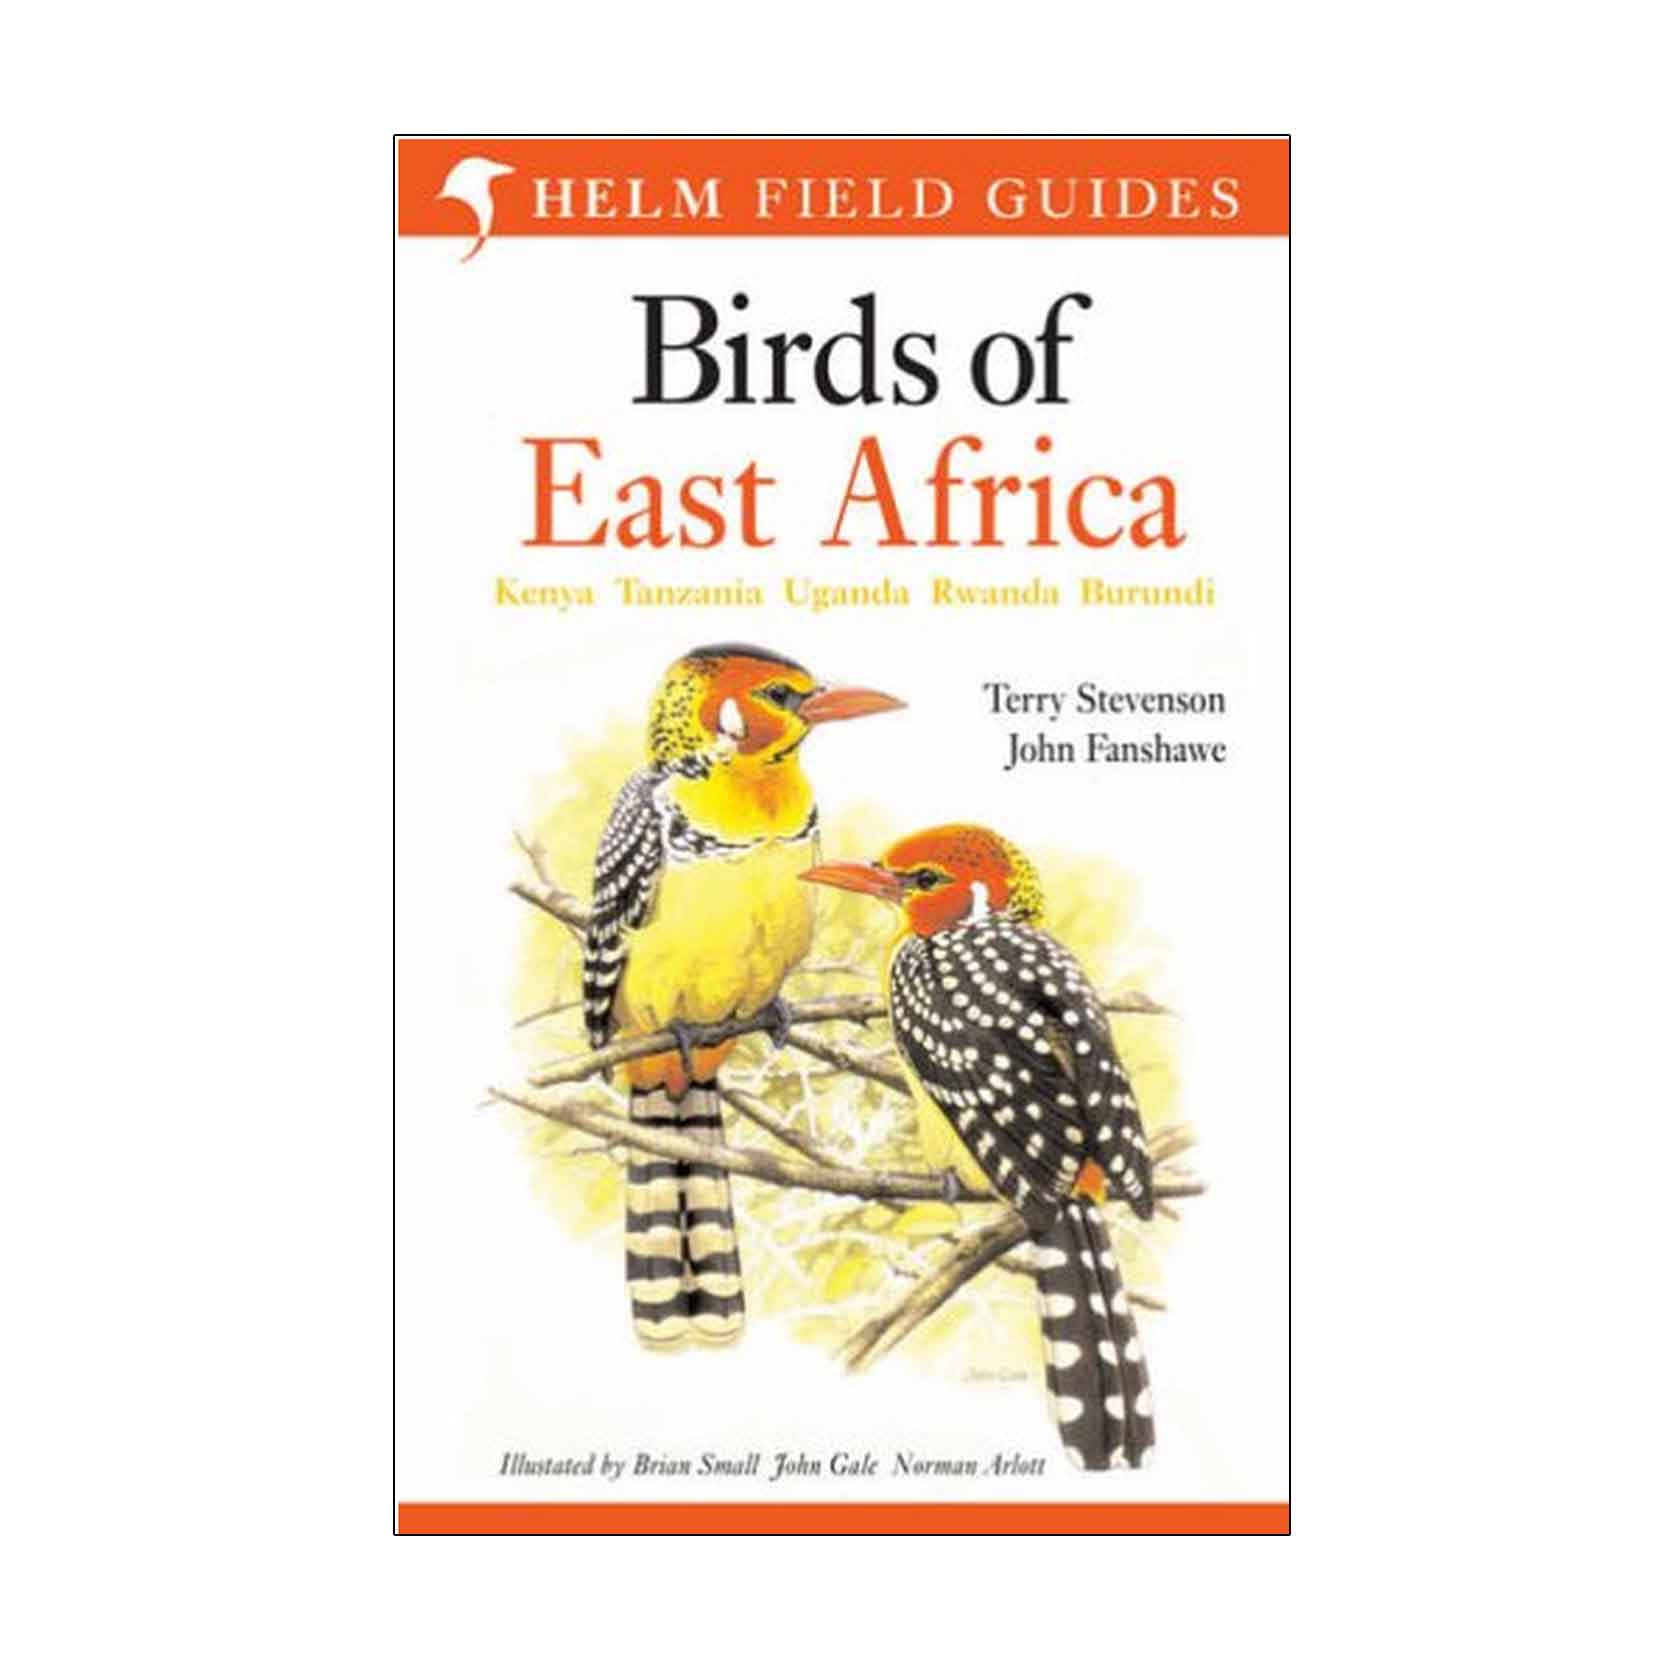 Field Guides: Birds Of East Africa – Helm Field Guide